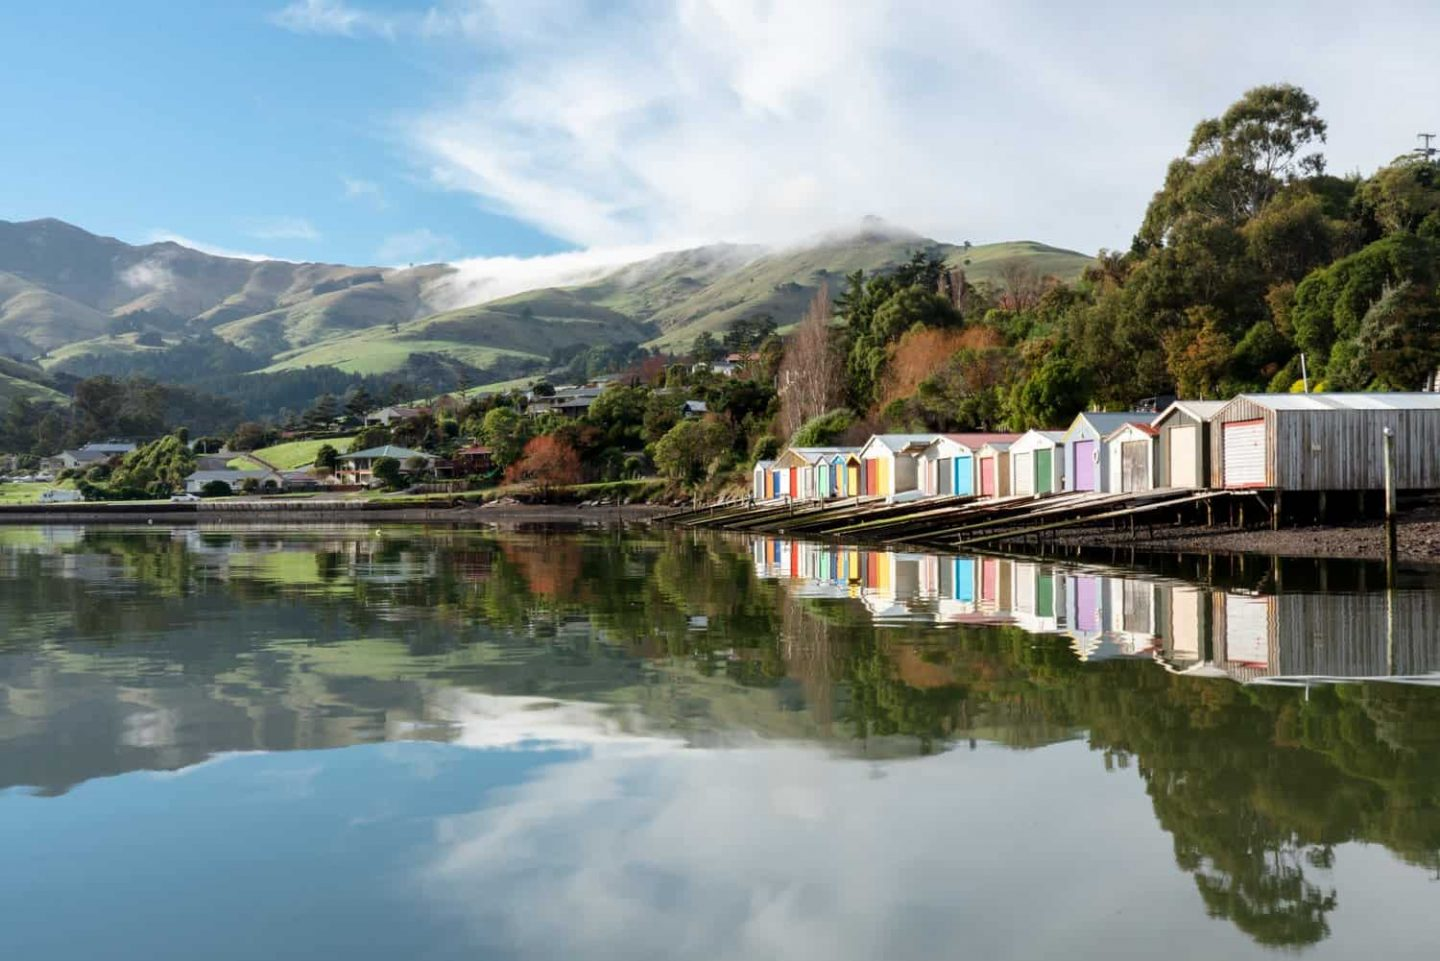 We suggest leaving Akaroa off of your 7 day South Island itinerary unless you have time to visit before your flight out of Christchurch.